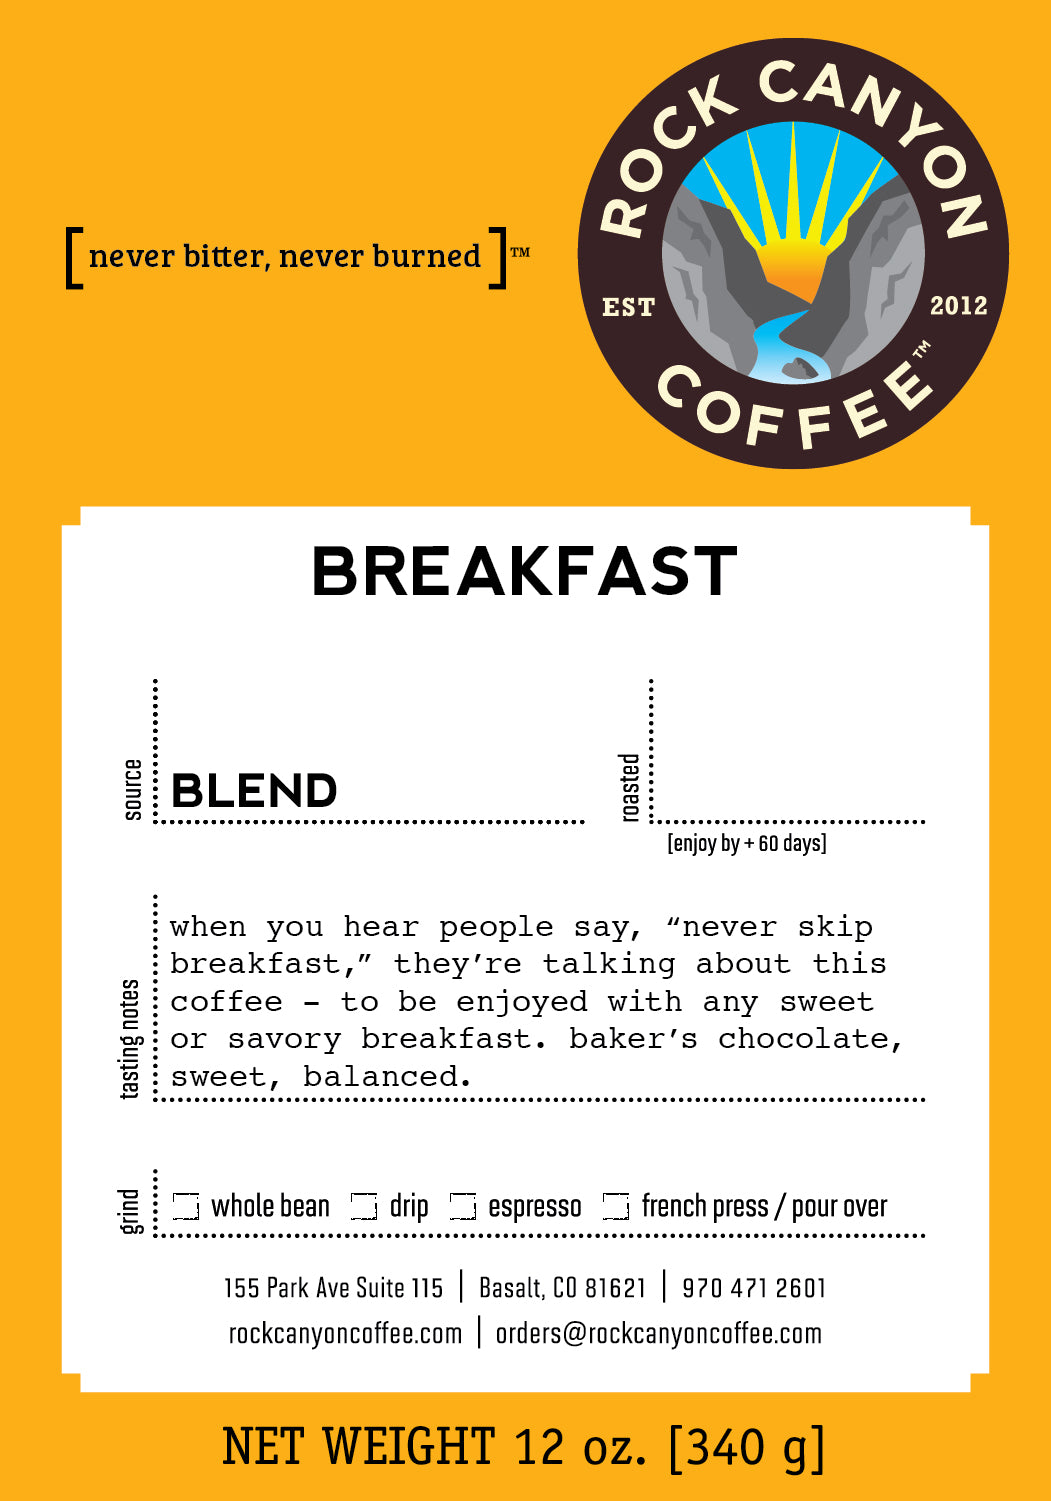 orange yellow Rock Canyon Coffee breakfast blend label with description